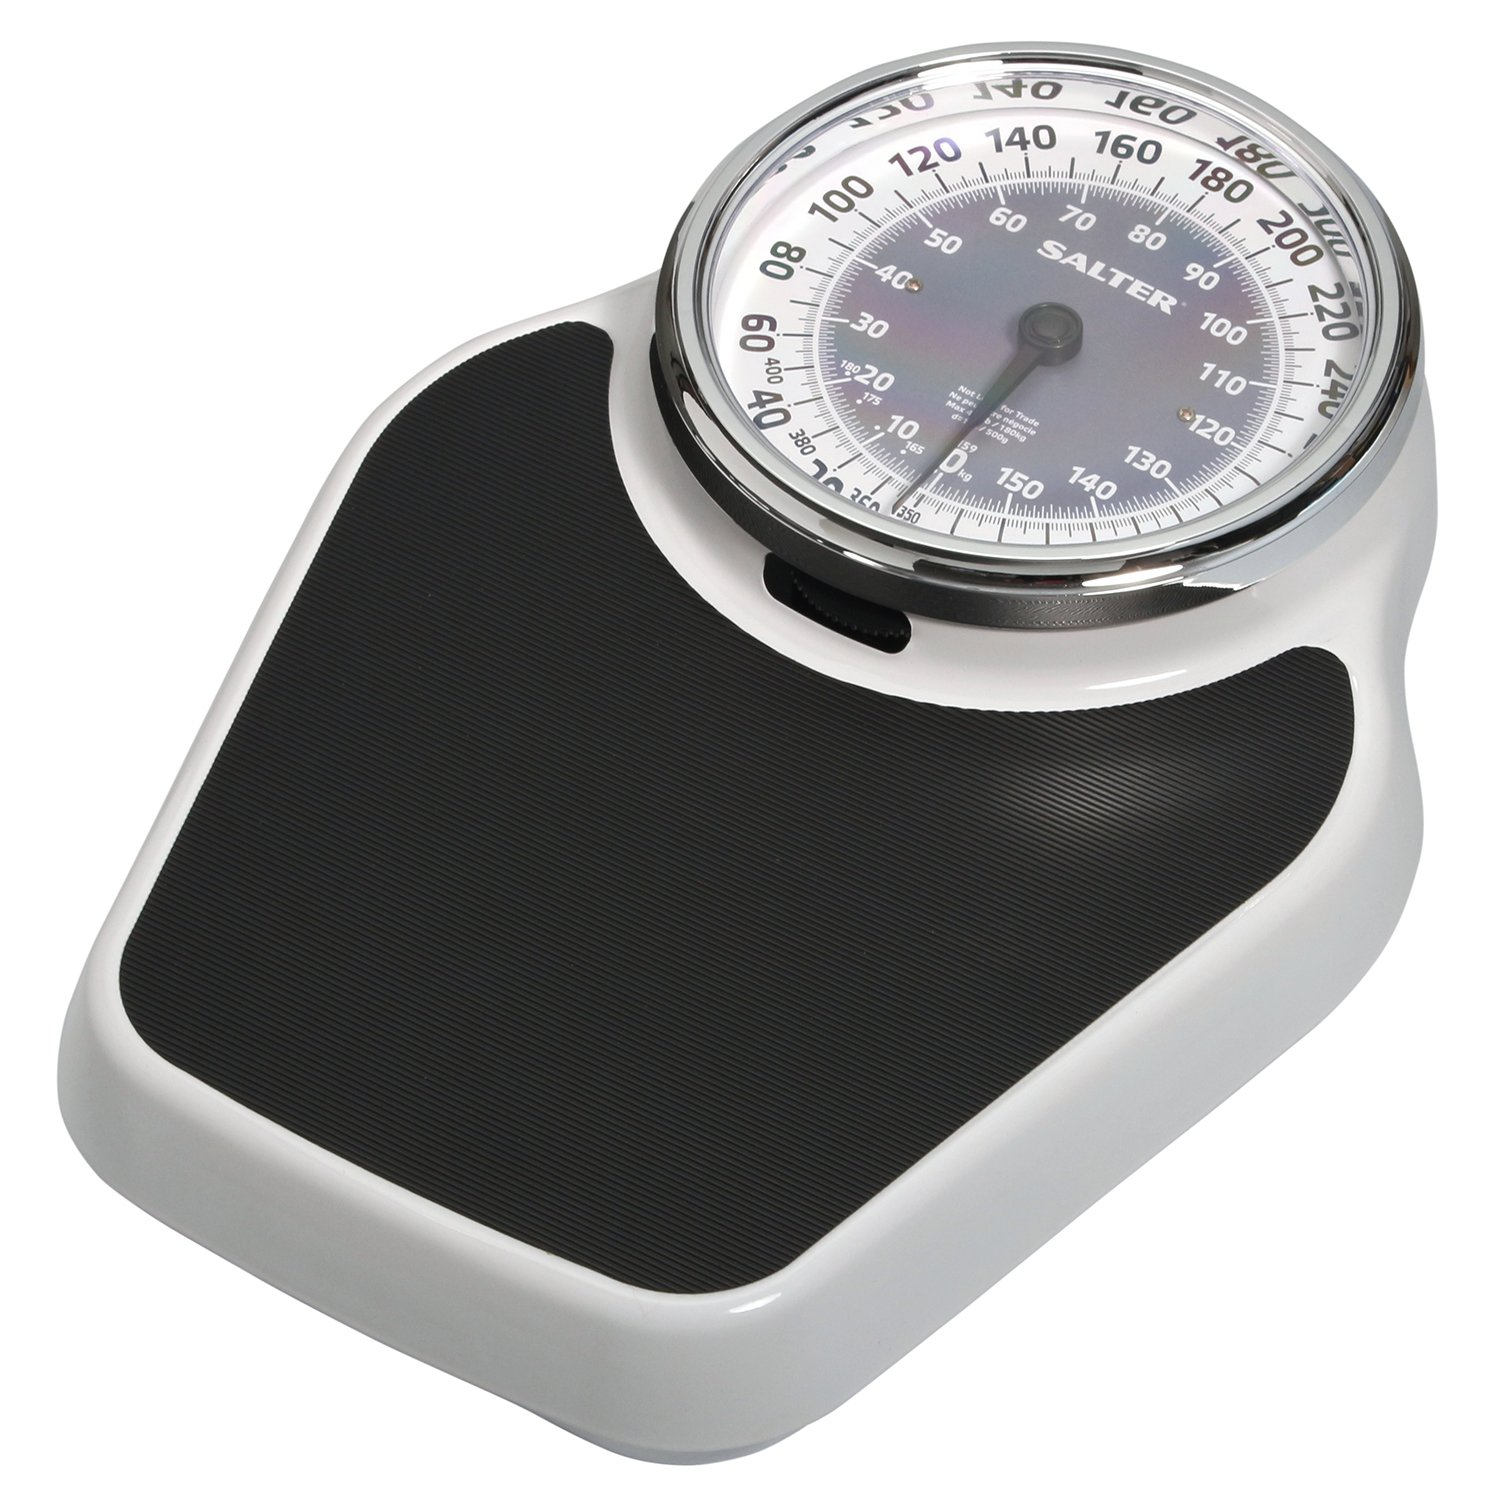 Salter Bathroom Scales Instruction Manual - Amazon com salter professional mechanical dial scale health personal care